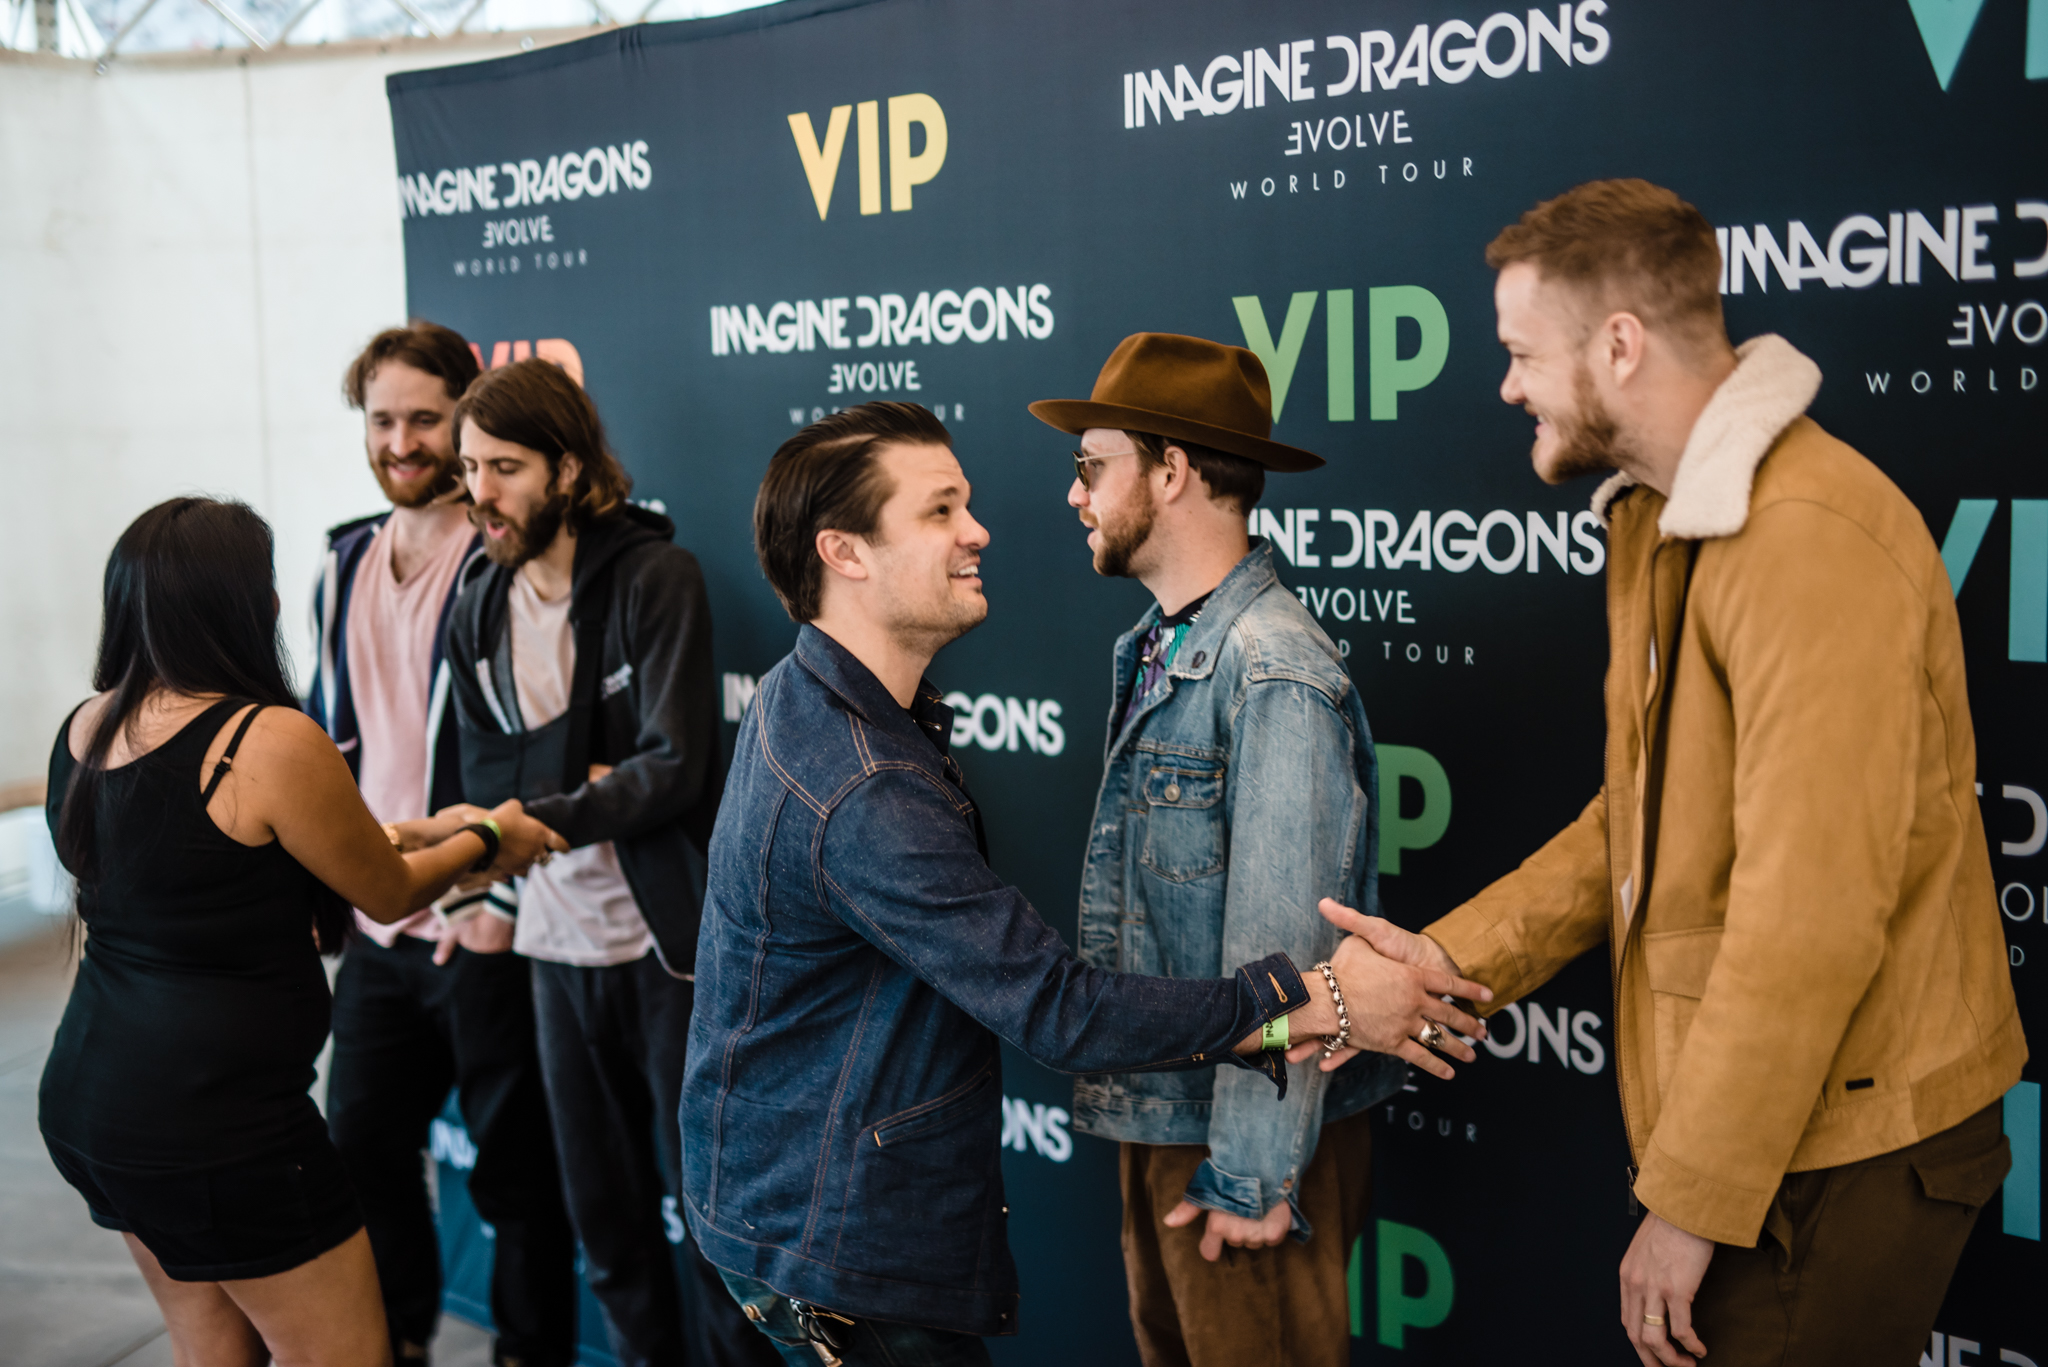 Imagine dragons tour vip tickets one 1 premium reserved seat in the first 5 rows or one 1 general admission pit ticket with early entry to see imagine dragons live meet greet m4hsunfo